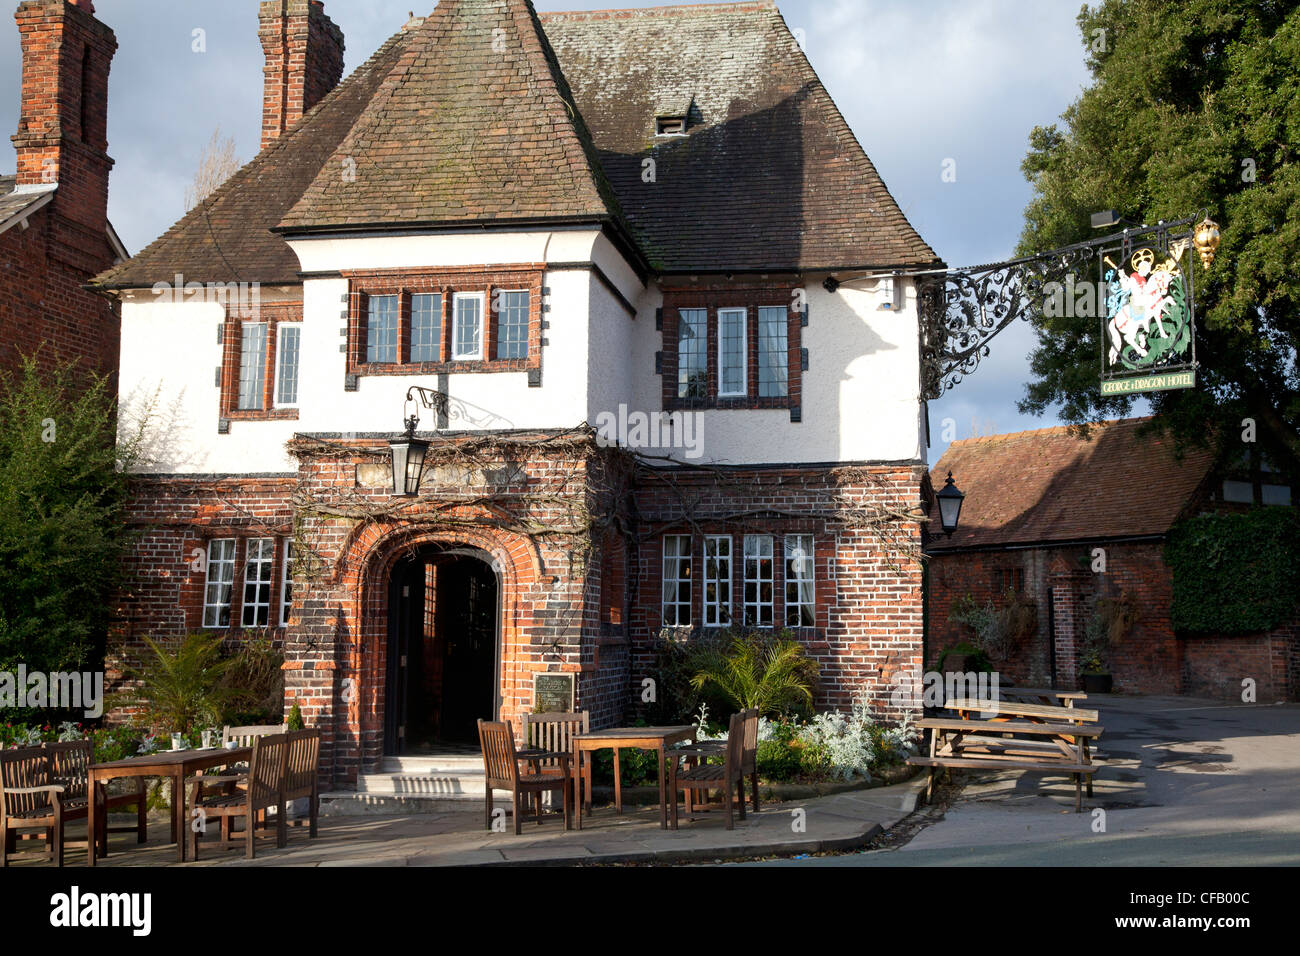 The George and Dragon pub, Great Budworth, Cheshire - Stock Image